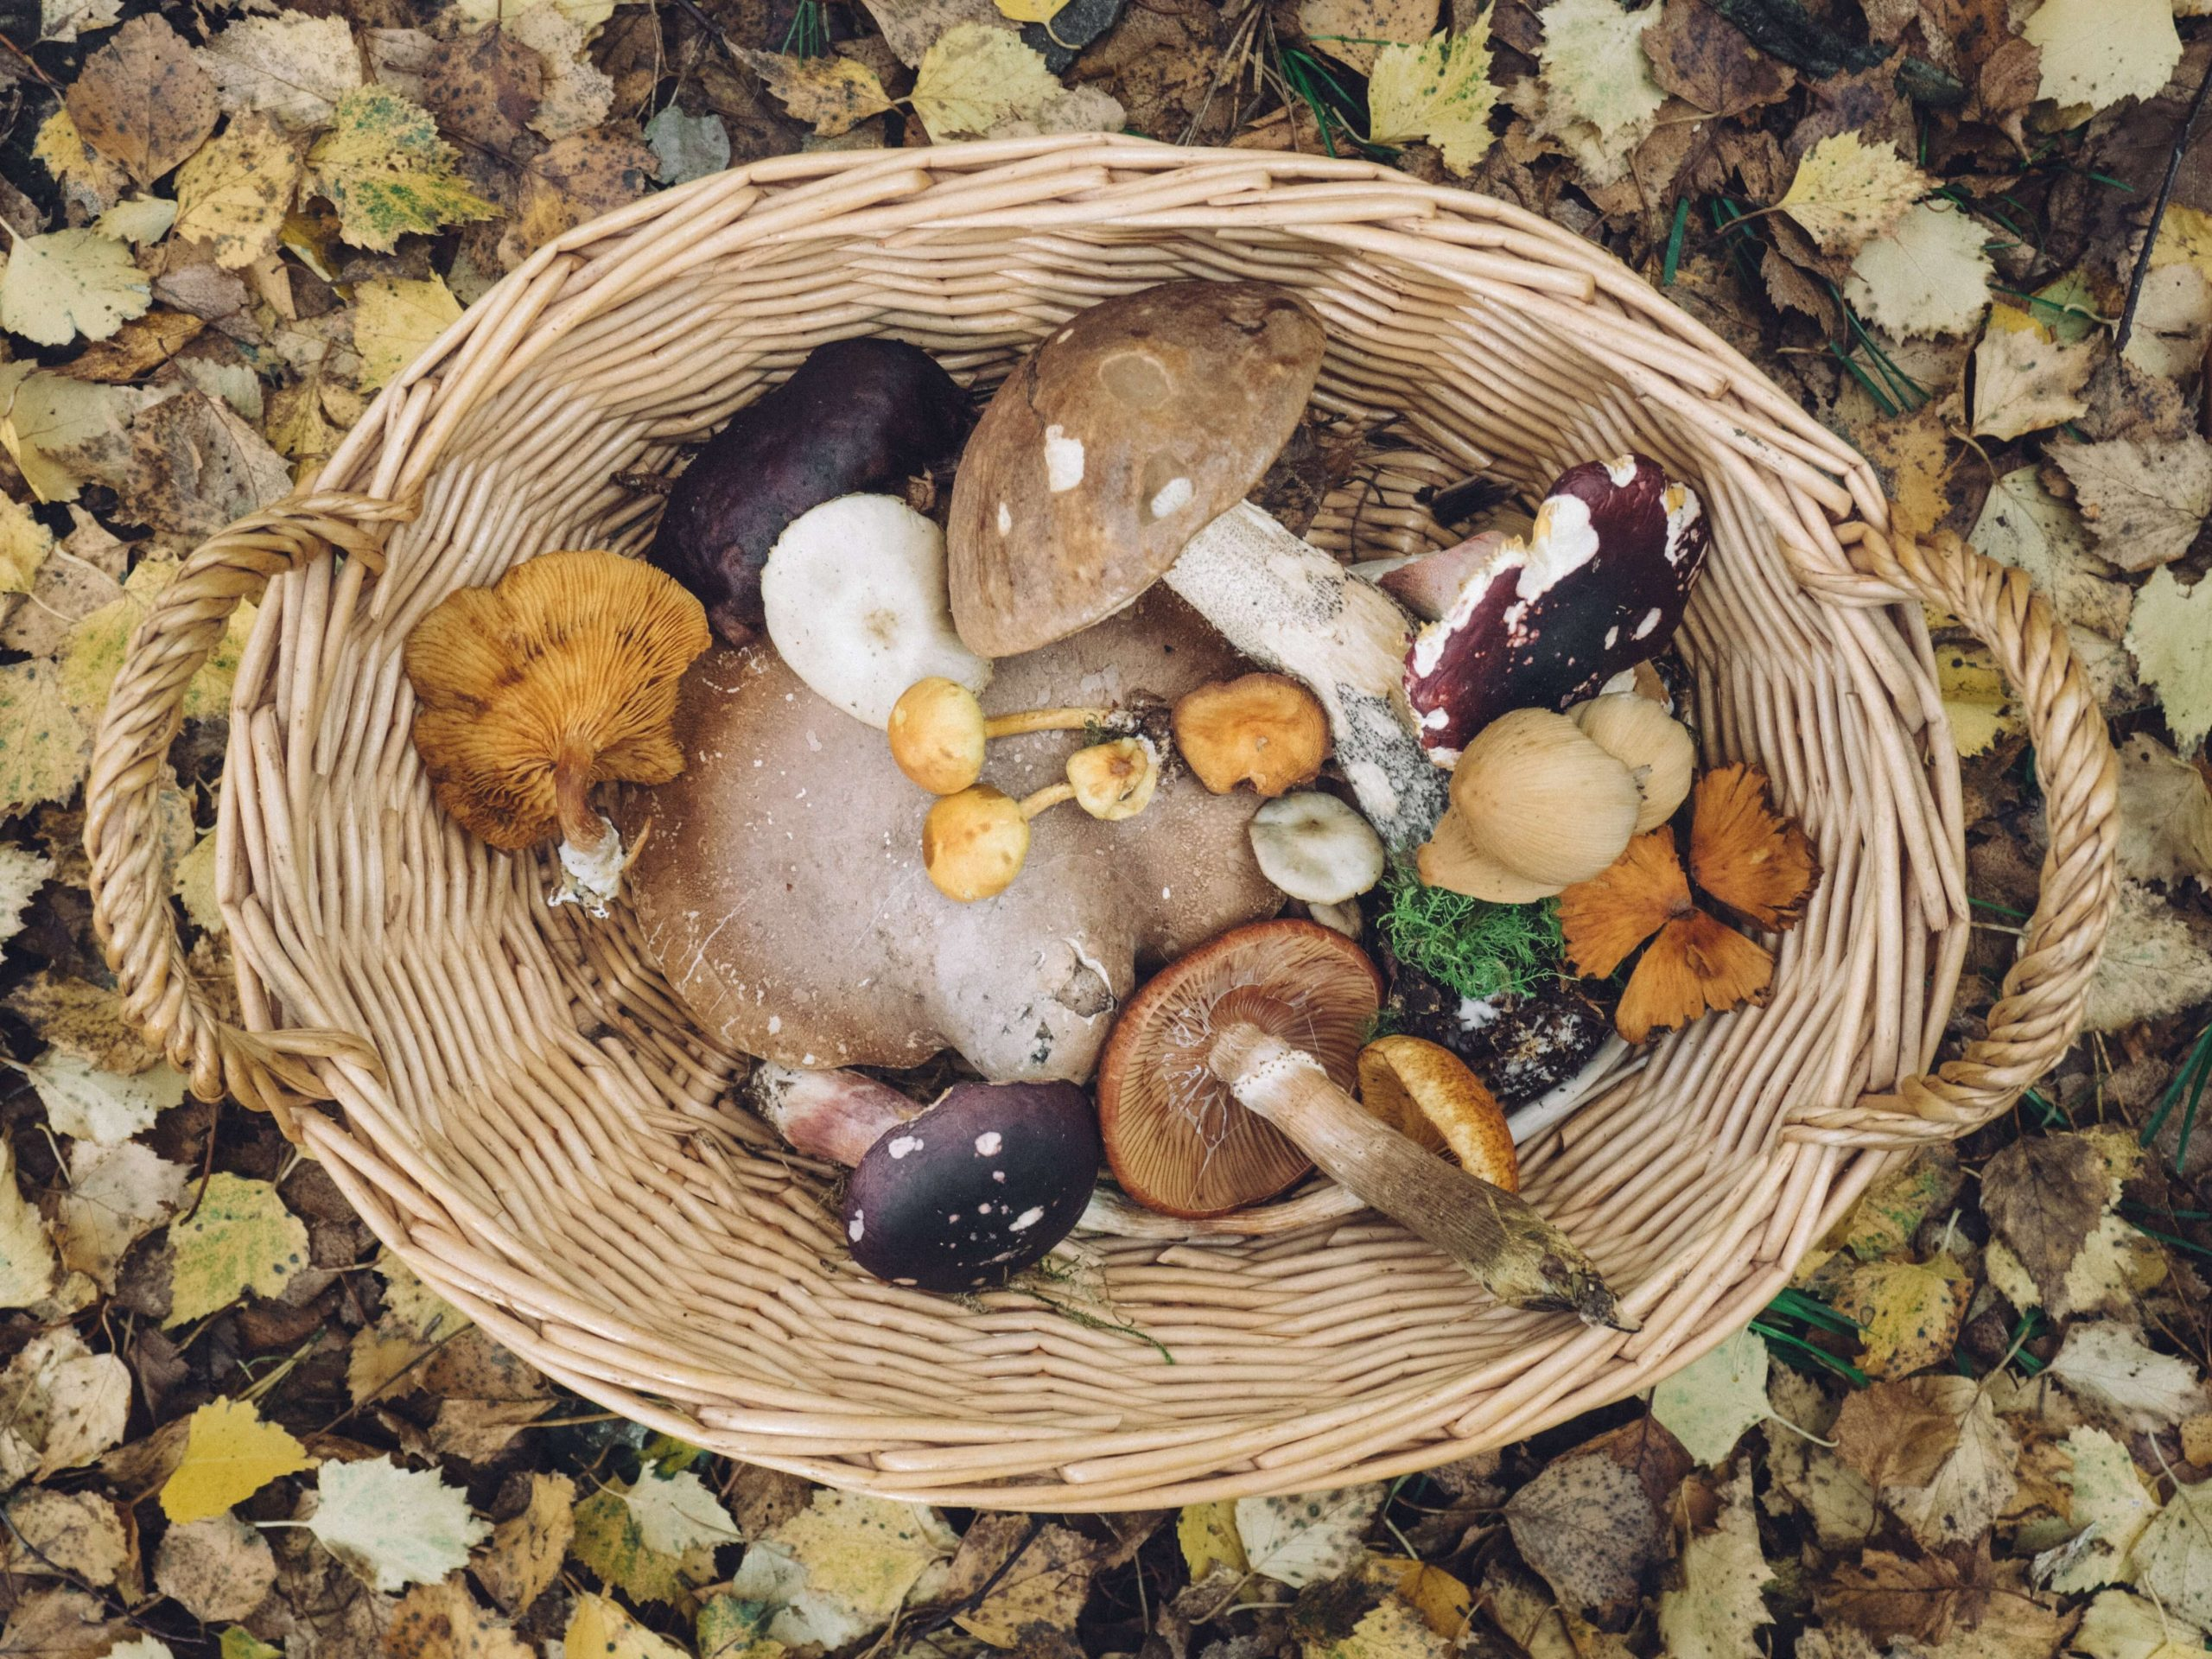 Some of The Different Types of Mushrooms1